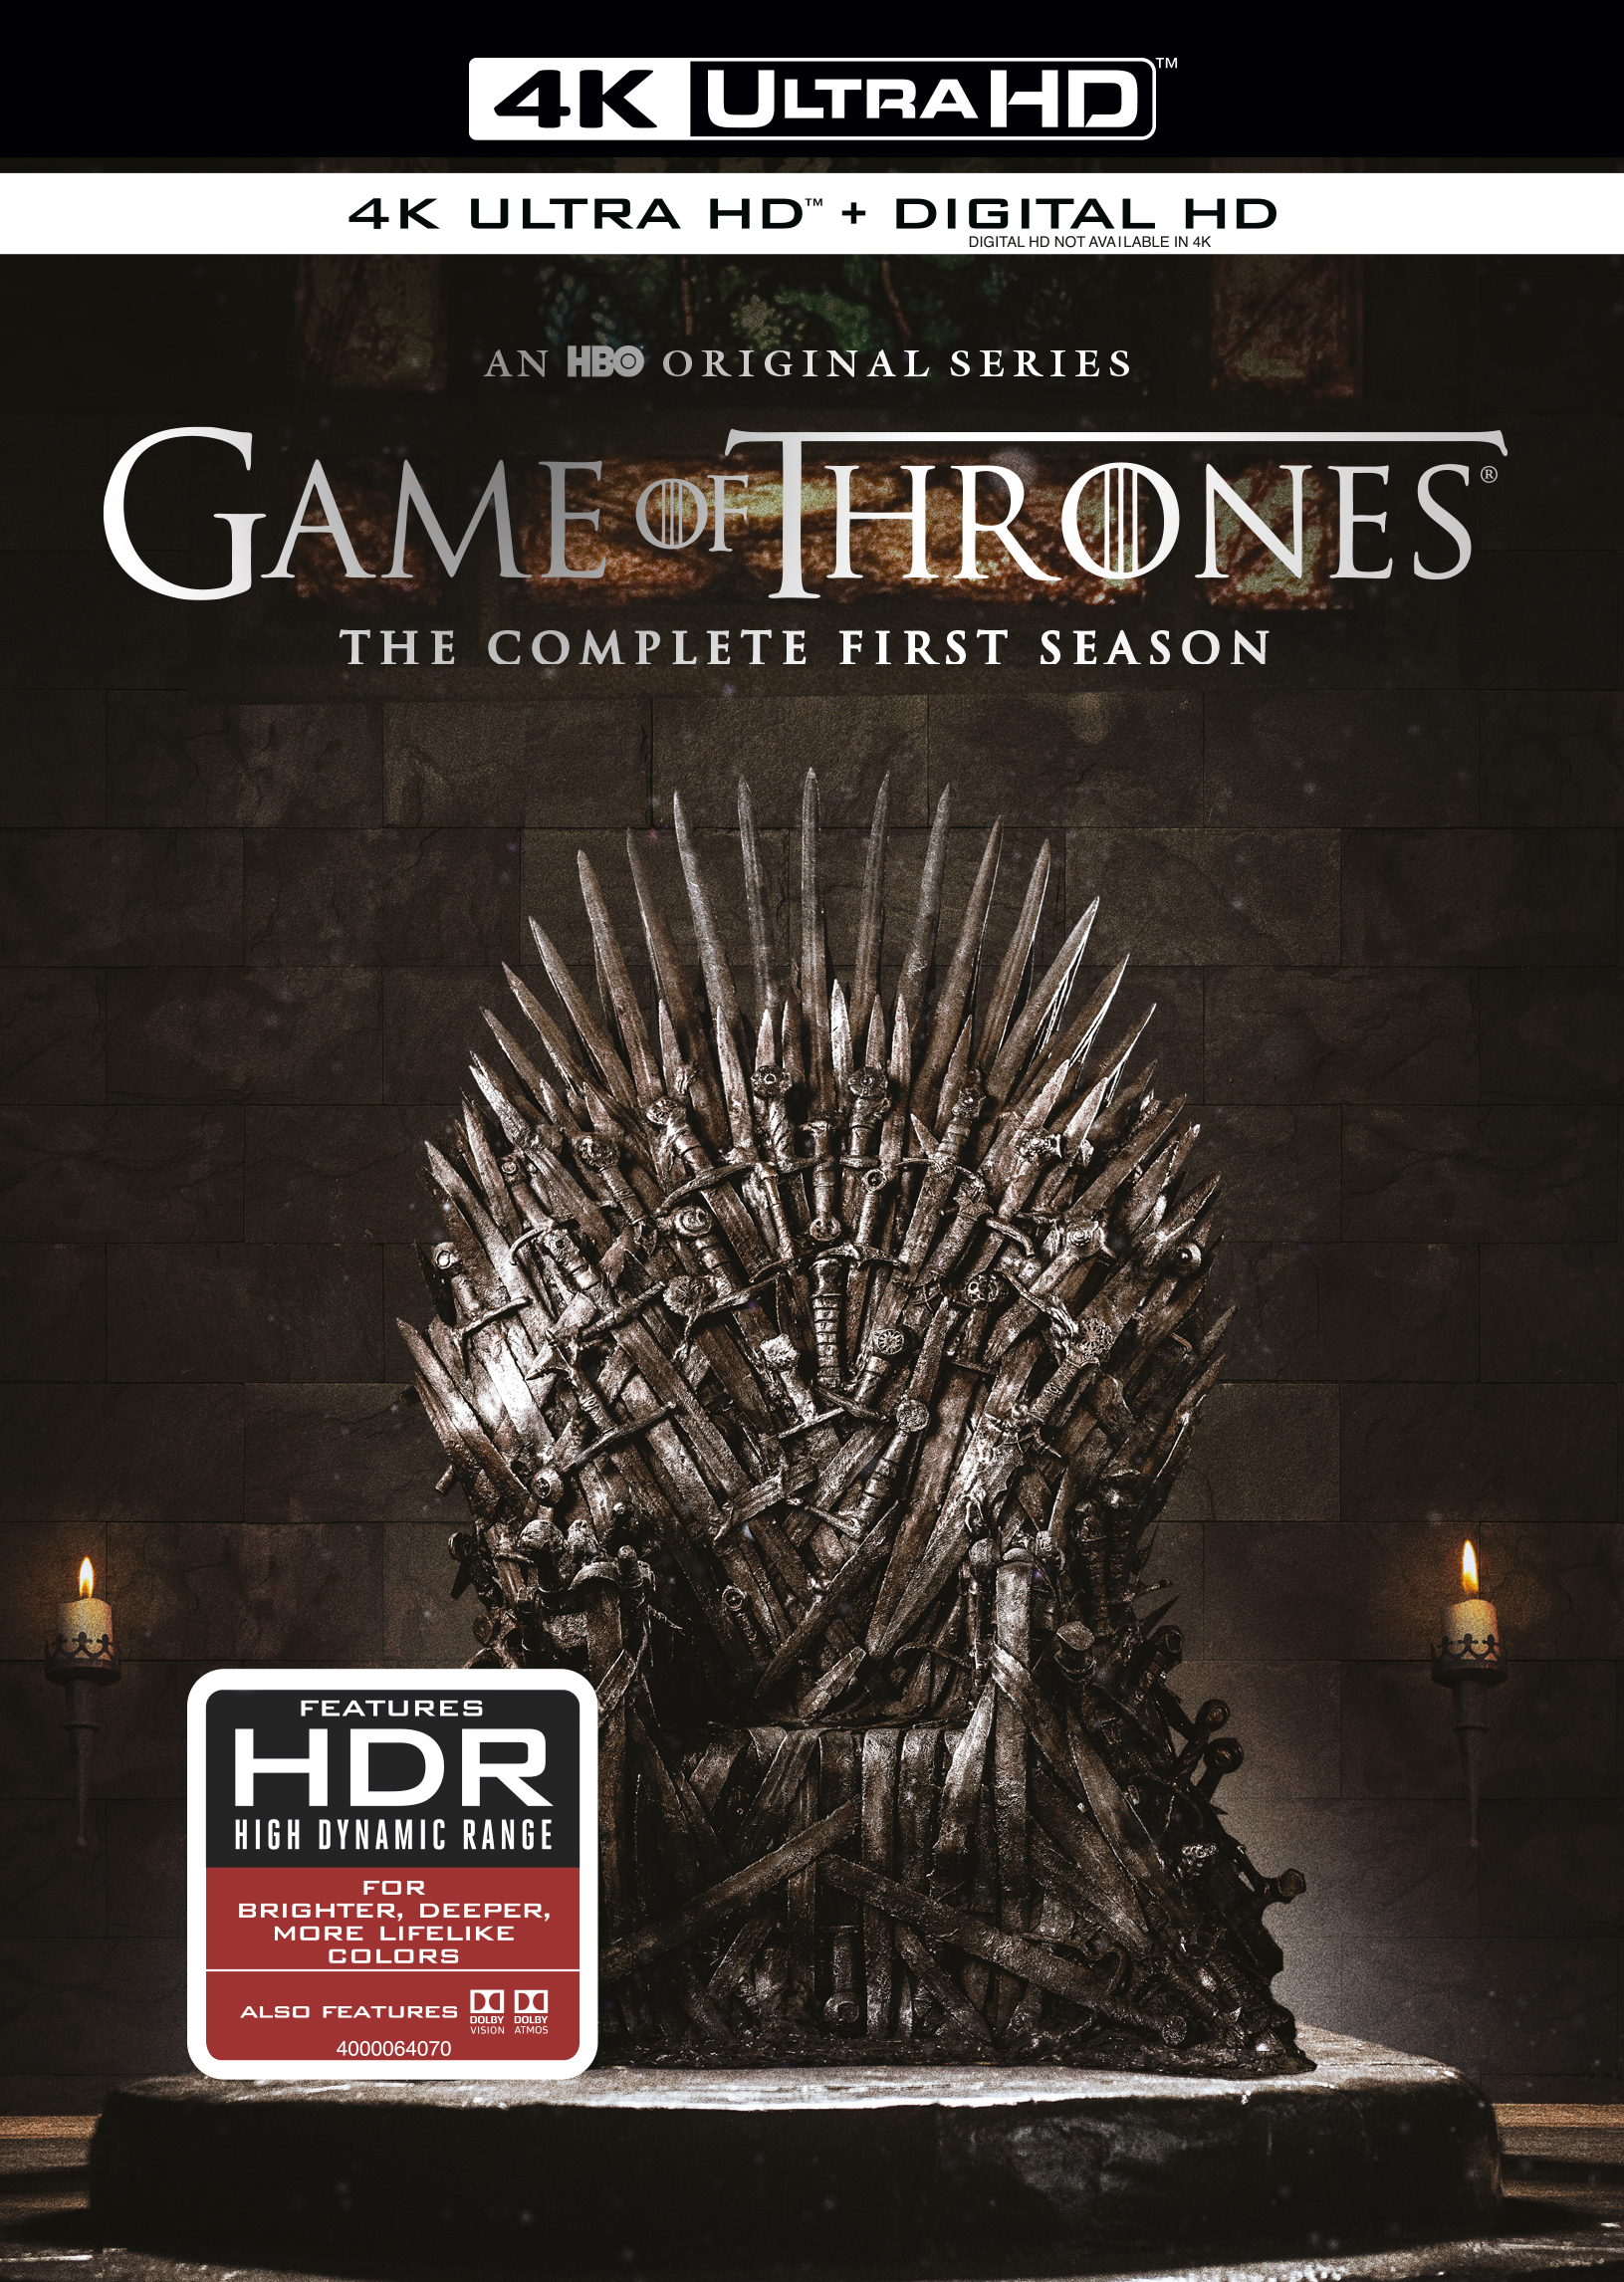 Game of Thrones: The Complete First Season 4K Blu-ray